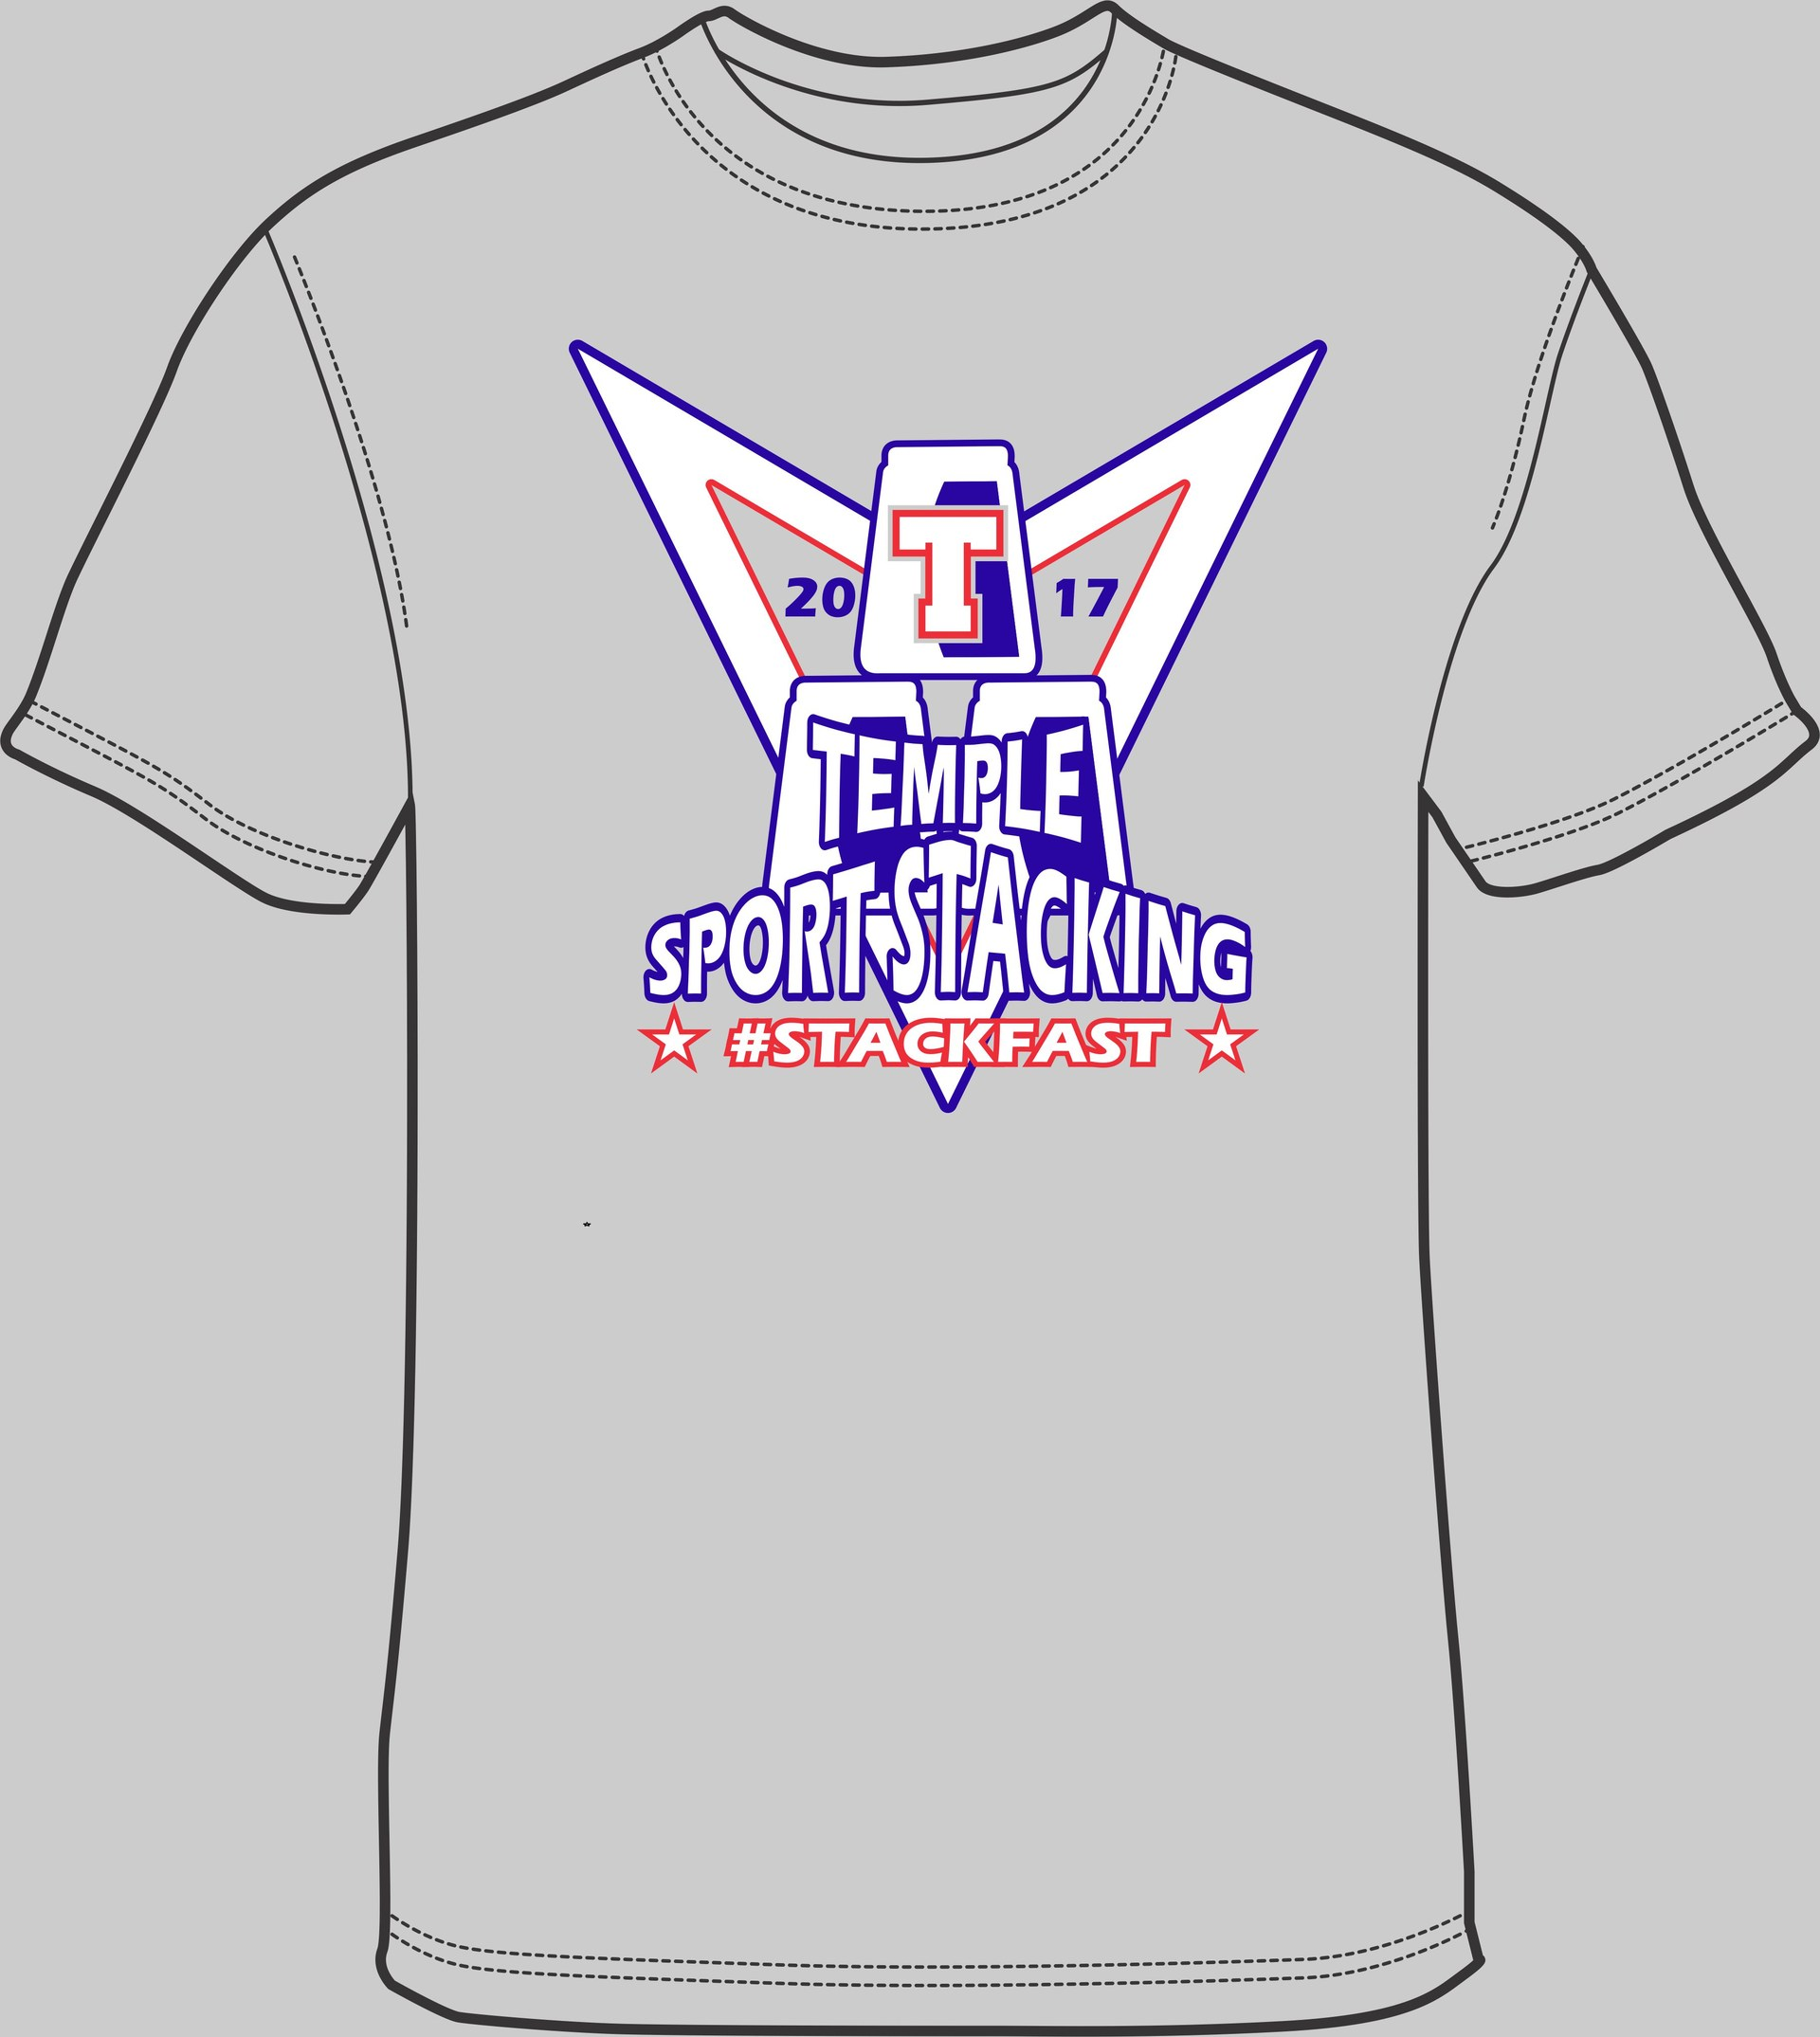 Sportstacking t-shirts $10.00-Money due Sept. 20th